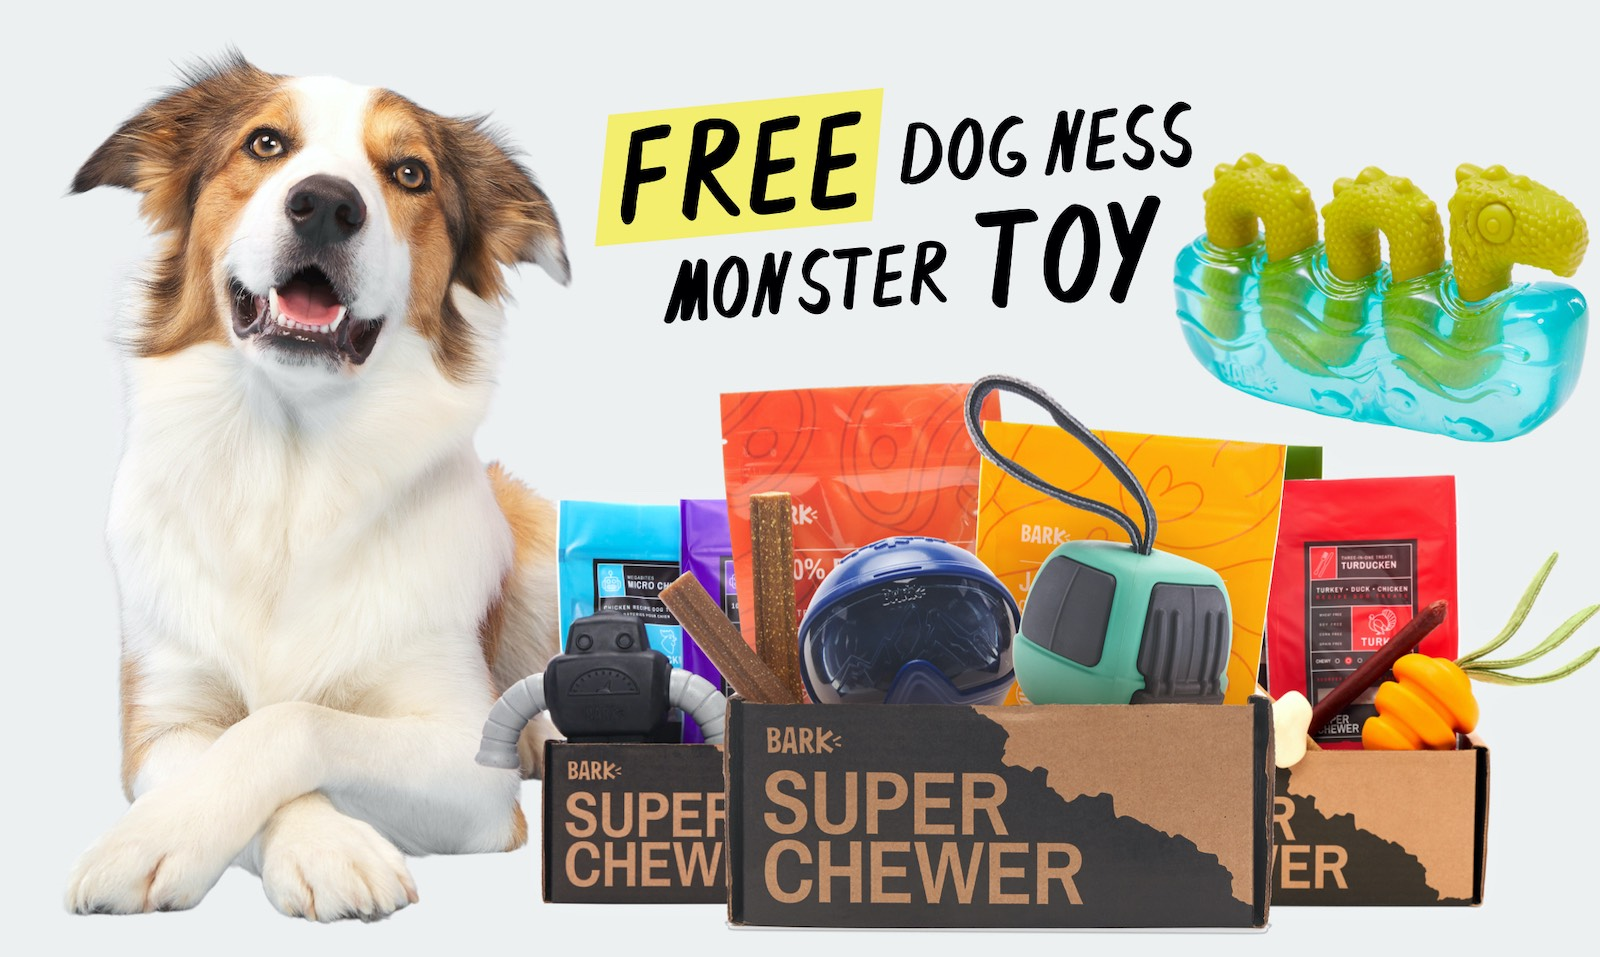 Super Chewer, a themed collection of tough toys, treats, and chews starting at $30 per month